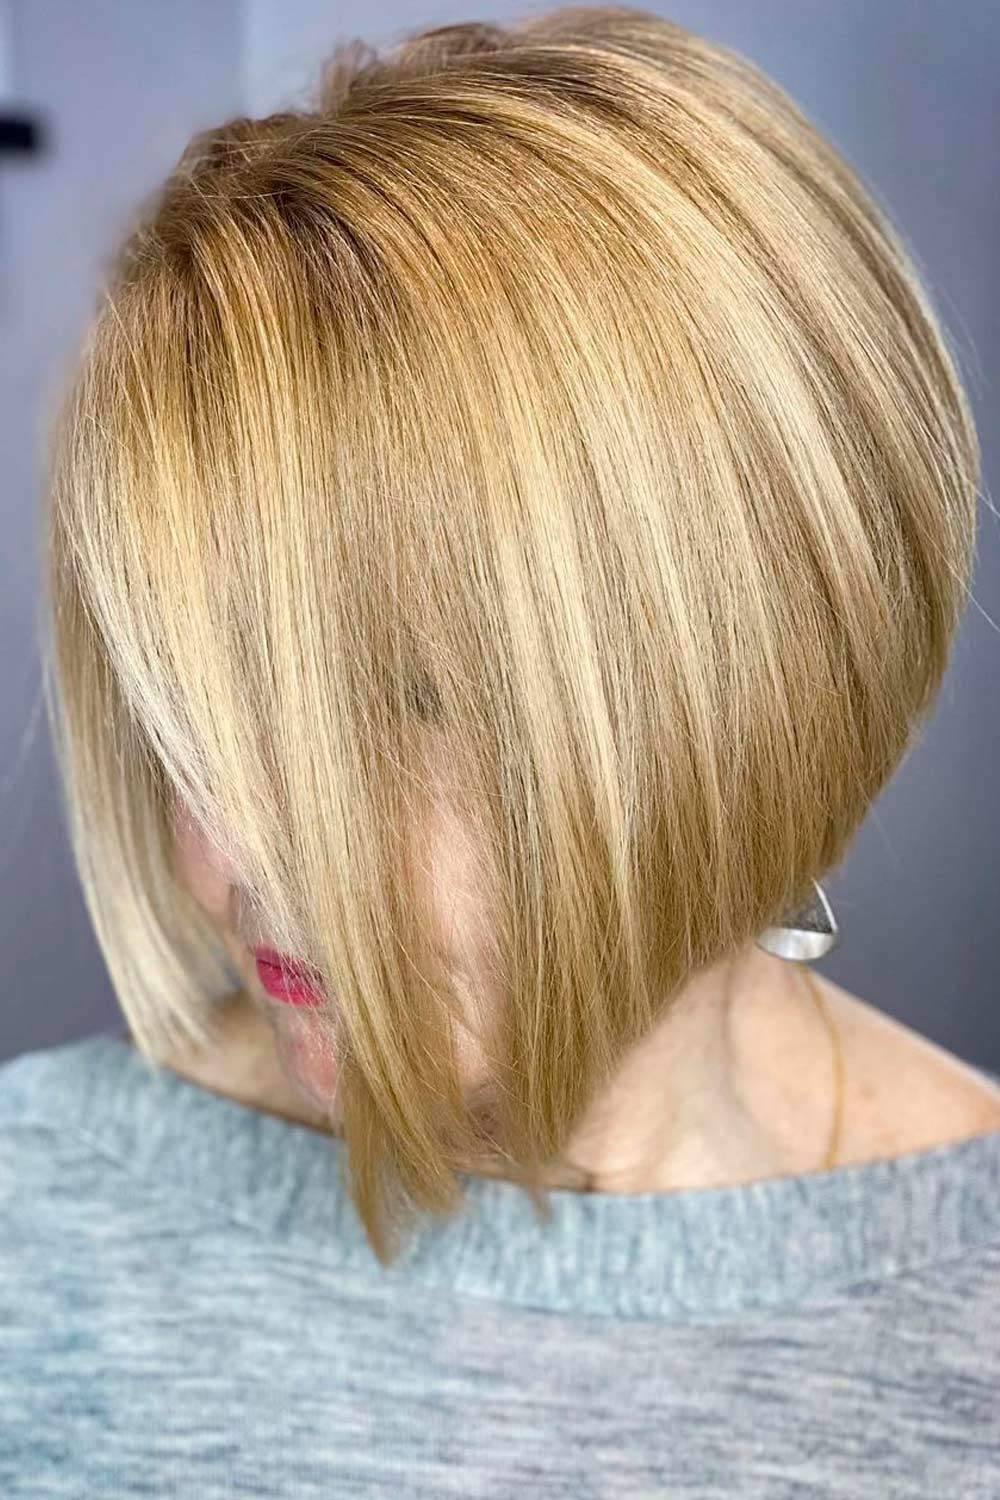 Natural Color For Bob Cut, hairstyles for black women over 40, hairstyles for plus size women over 40, short hairstyles for black women over 40